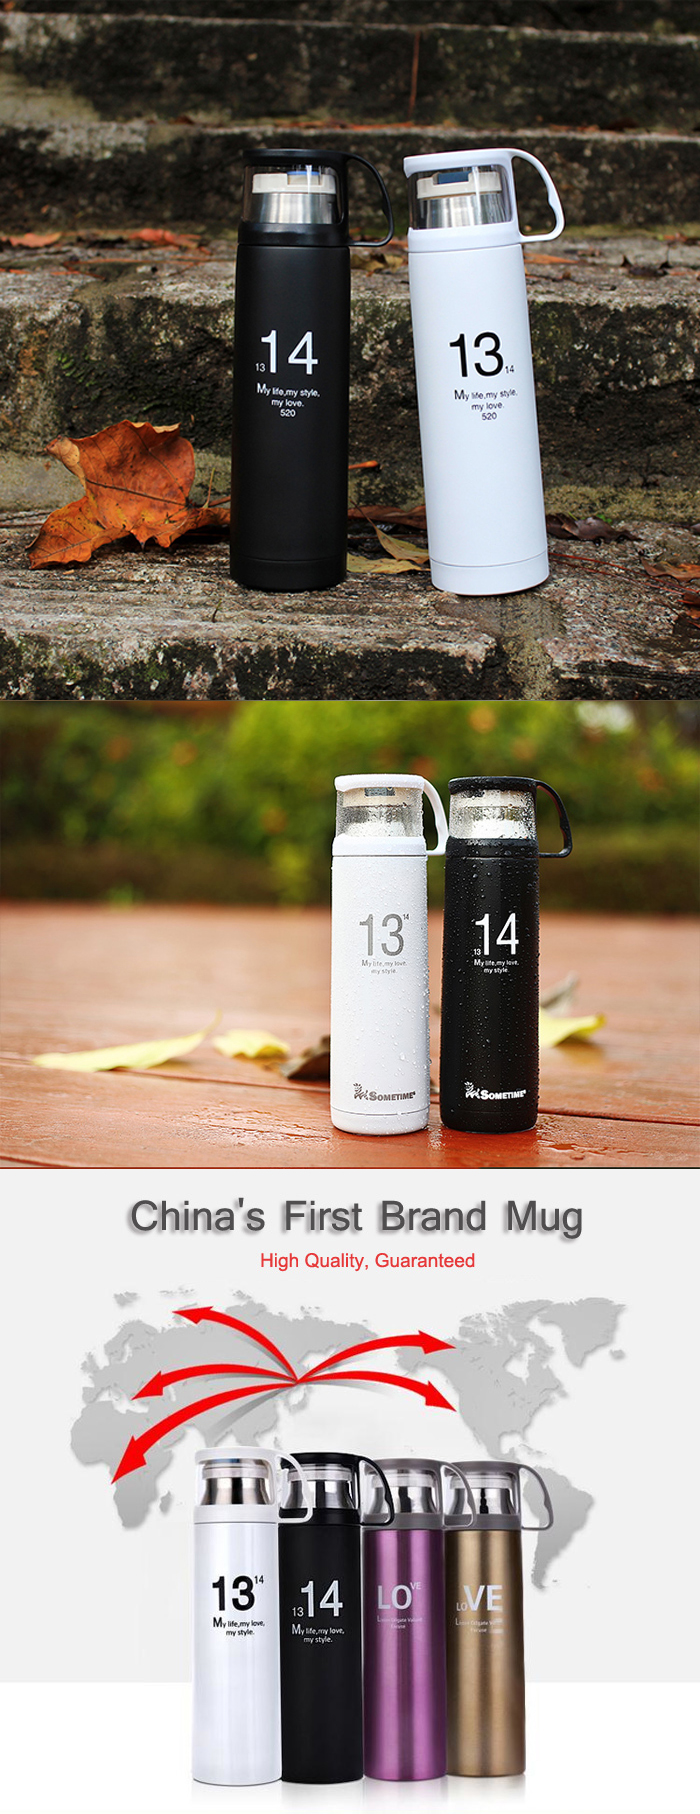 1314 Lovers Cup Stainless Steel Vacuum Flask Thermos Cup Portable Travel Mug